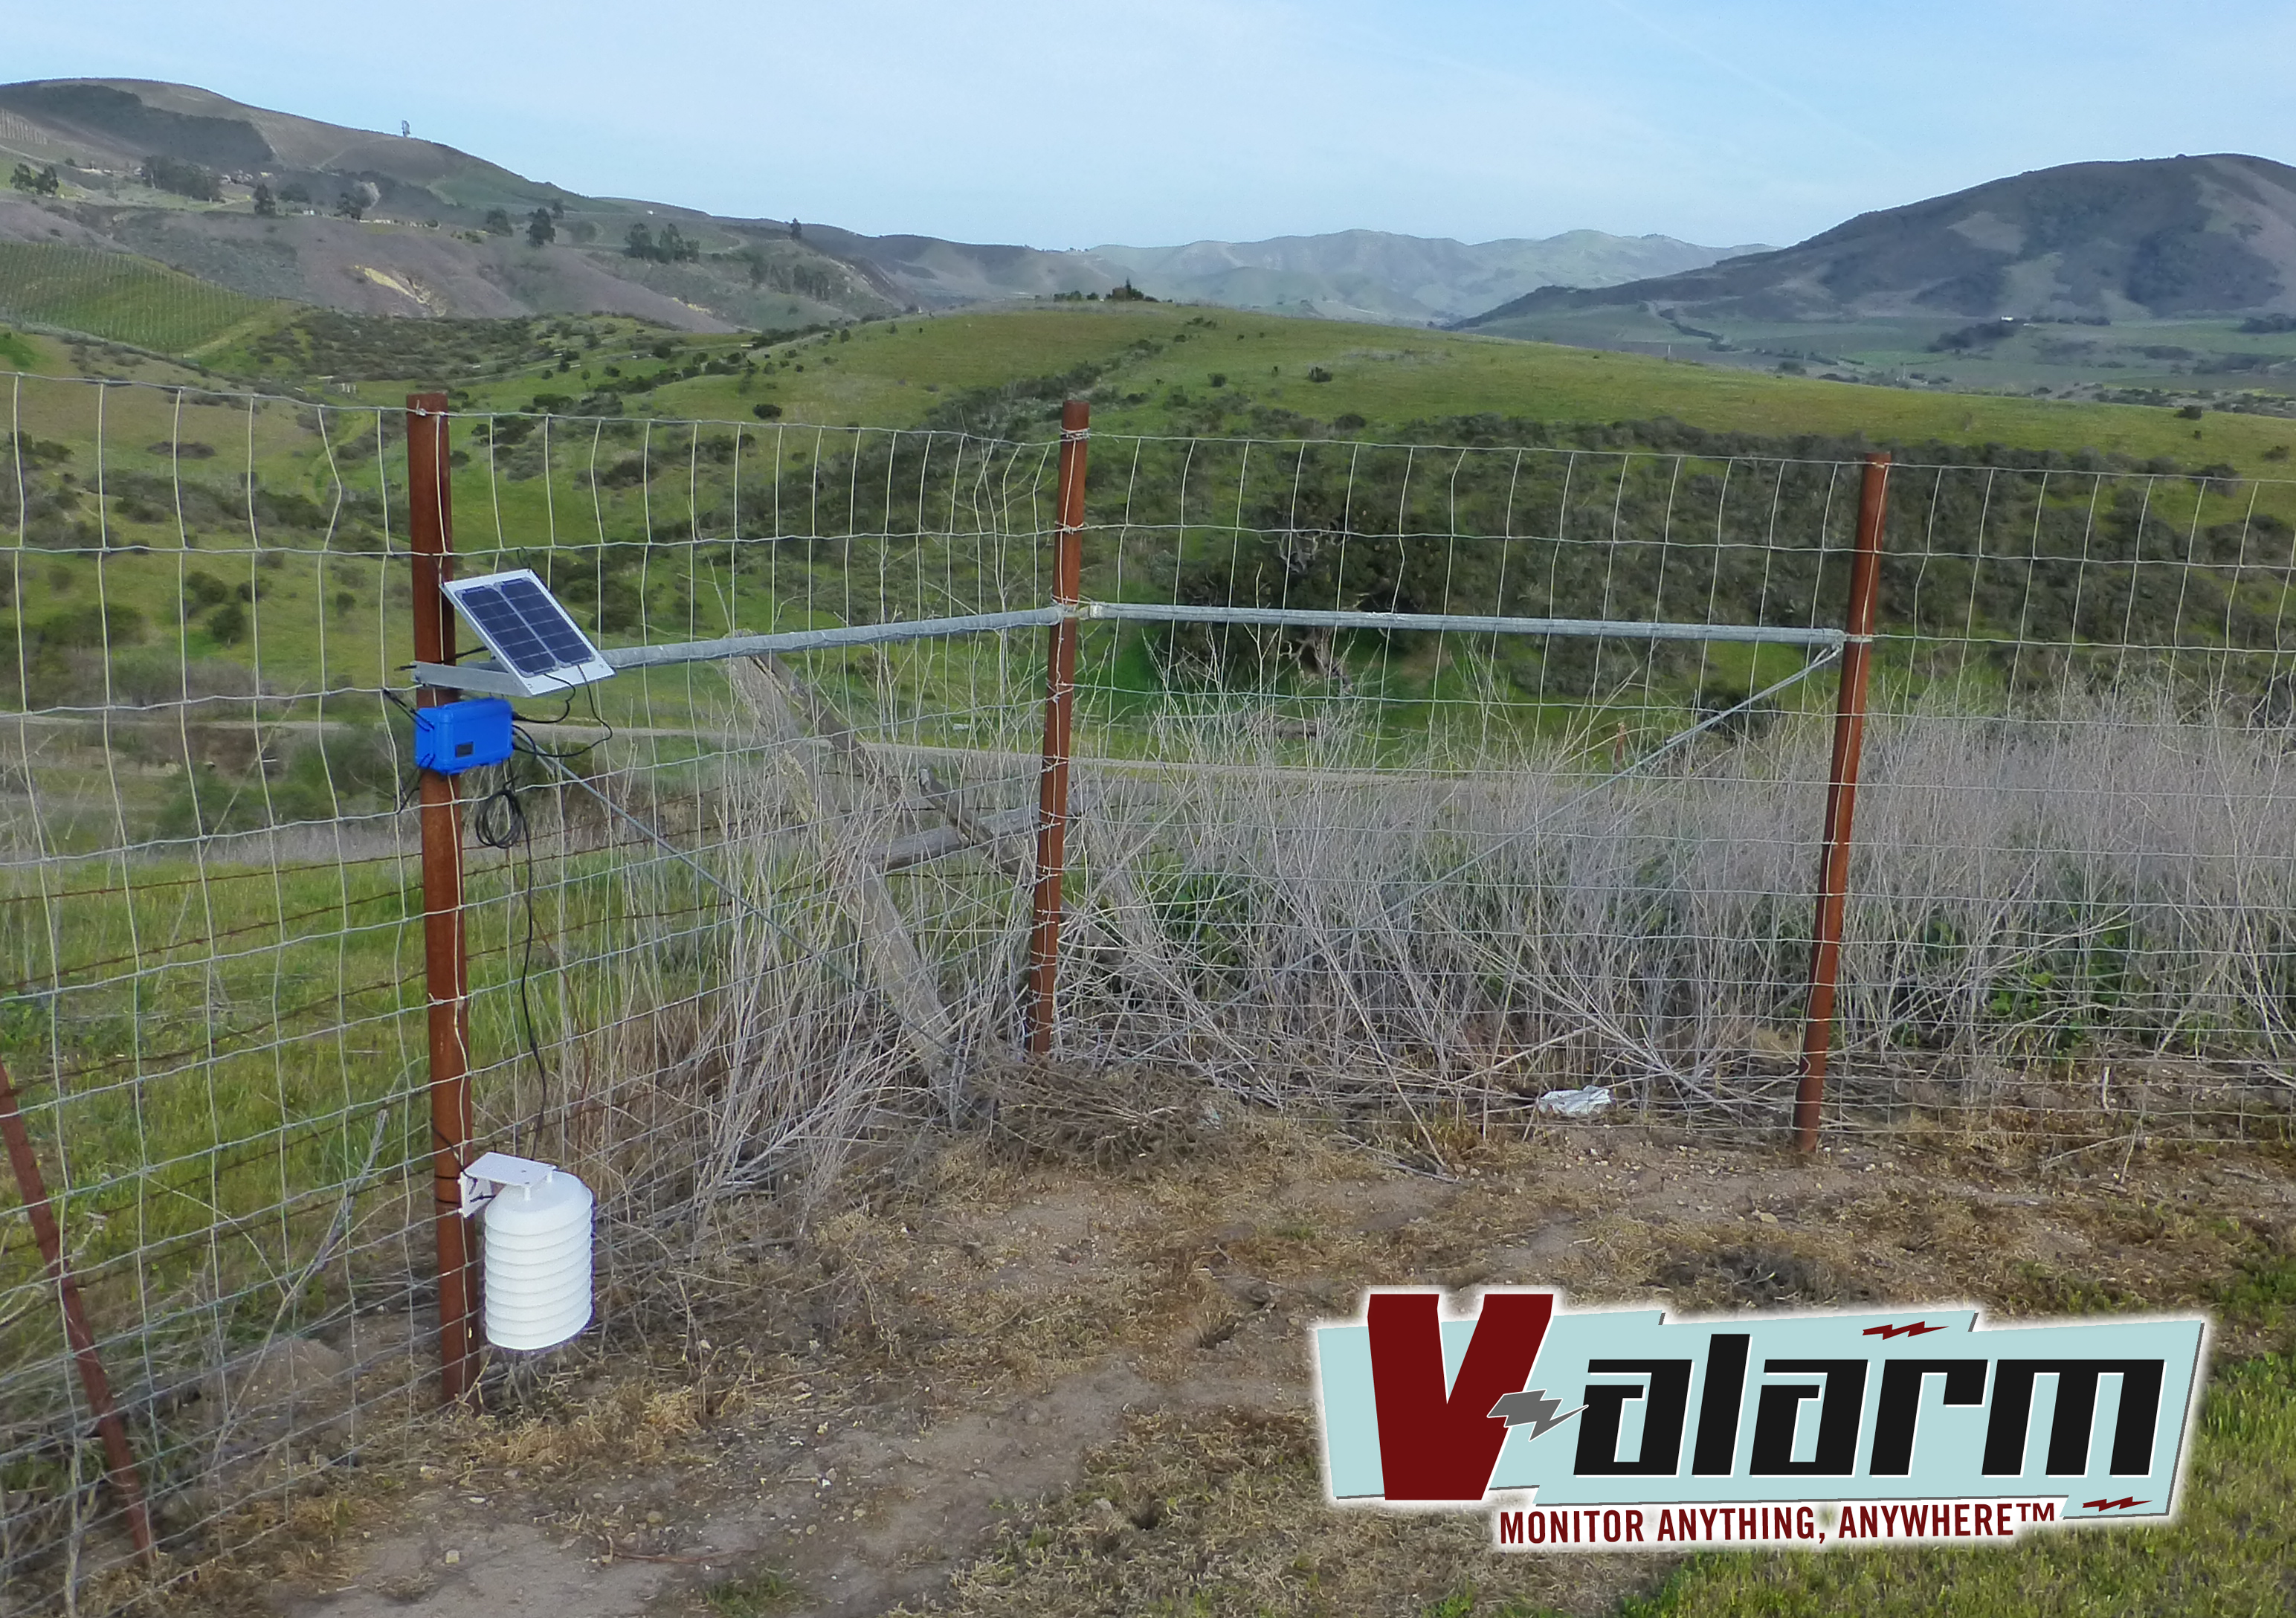 A solar-powered Valarm unit with Yocto-Meteo sensor monitors a remote vineyard.